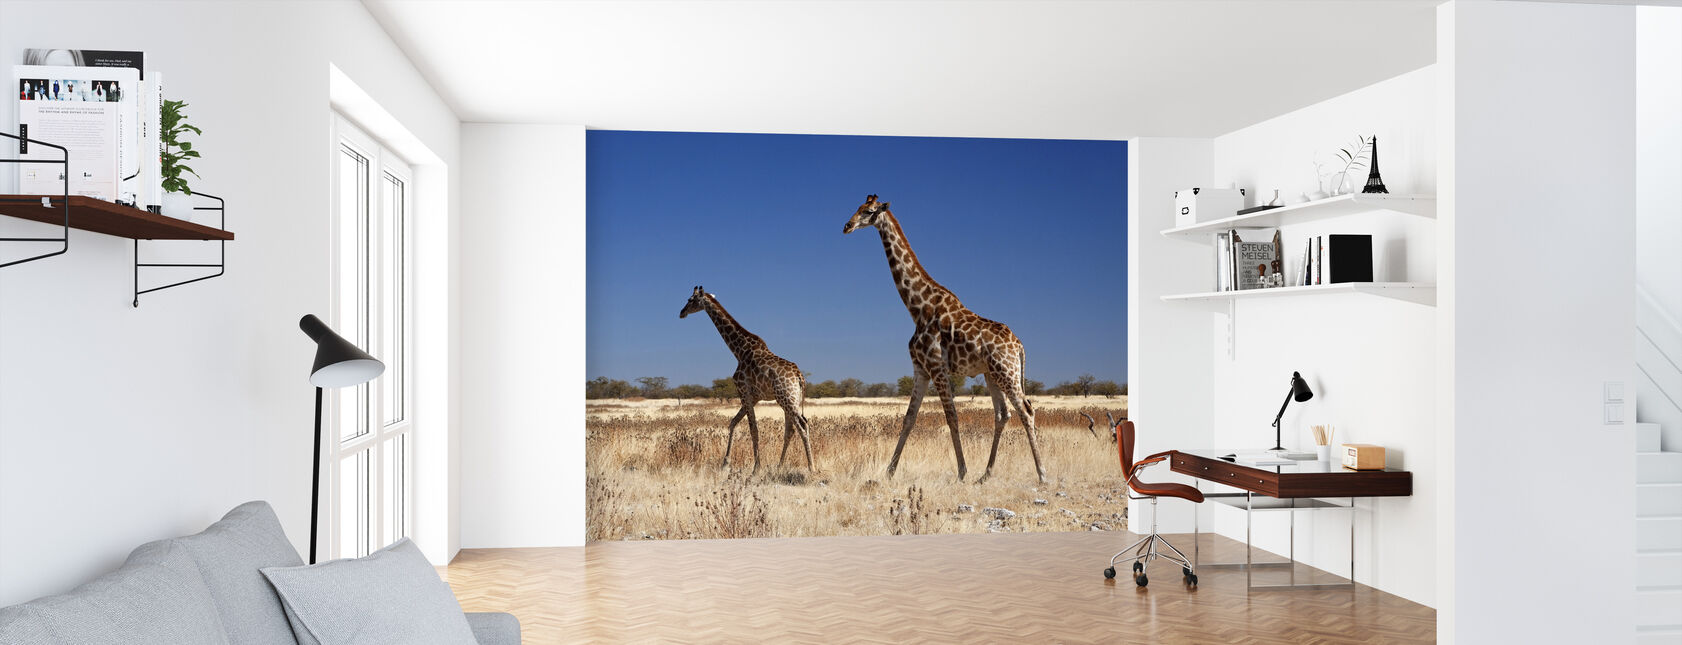 Giraffes at Etosha National Park - Wallpaper - Office